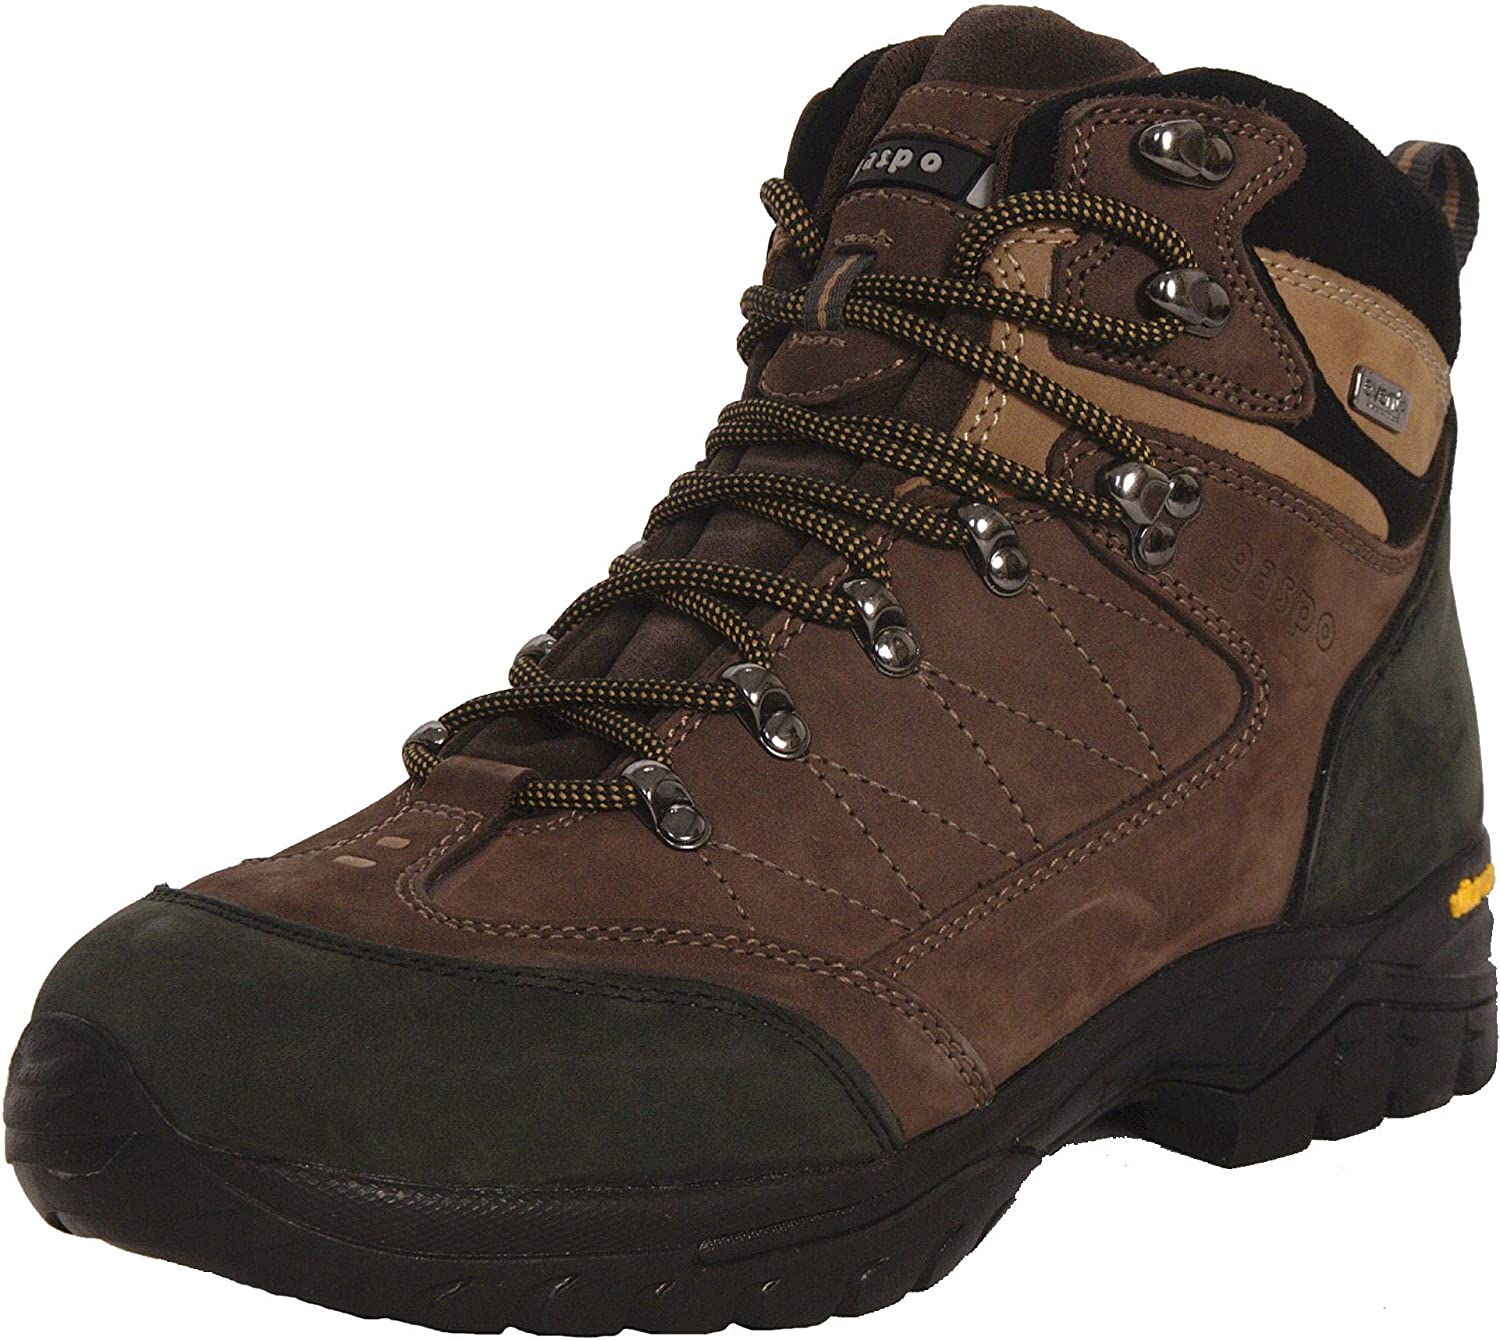 Gaspo Men's Vibram Sole Waterproof Hiking Boot